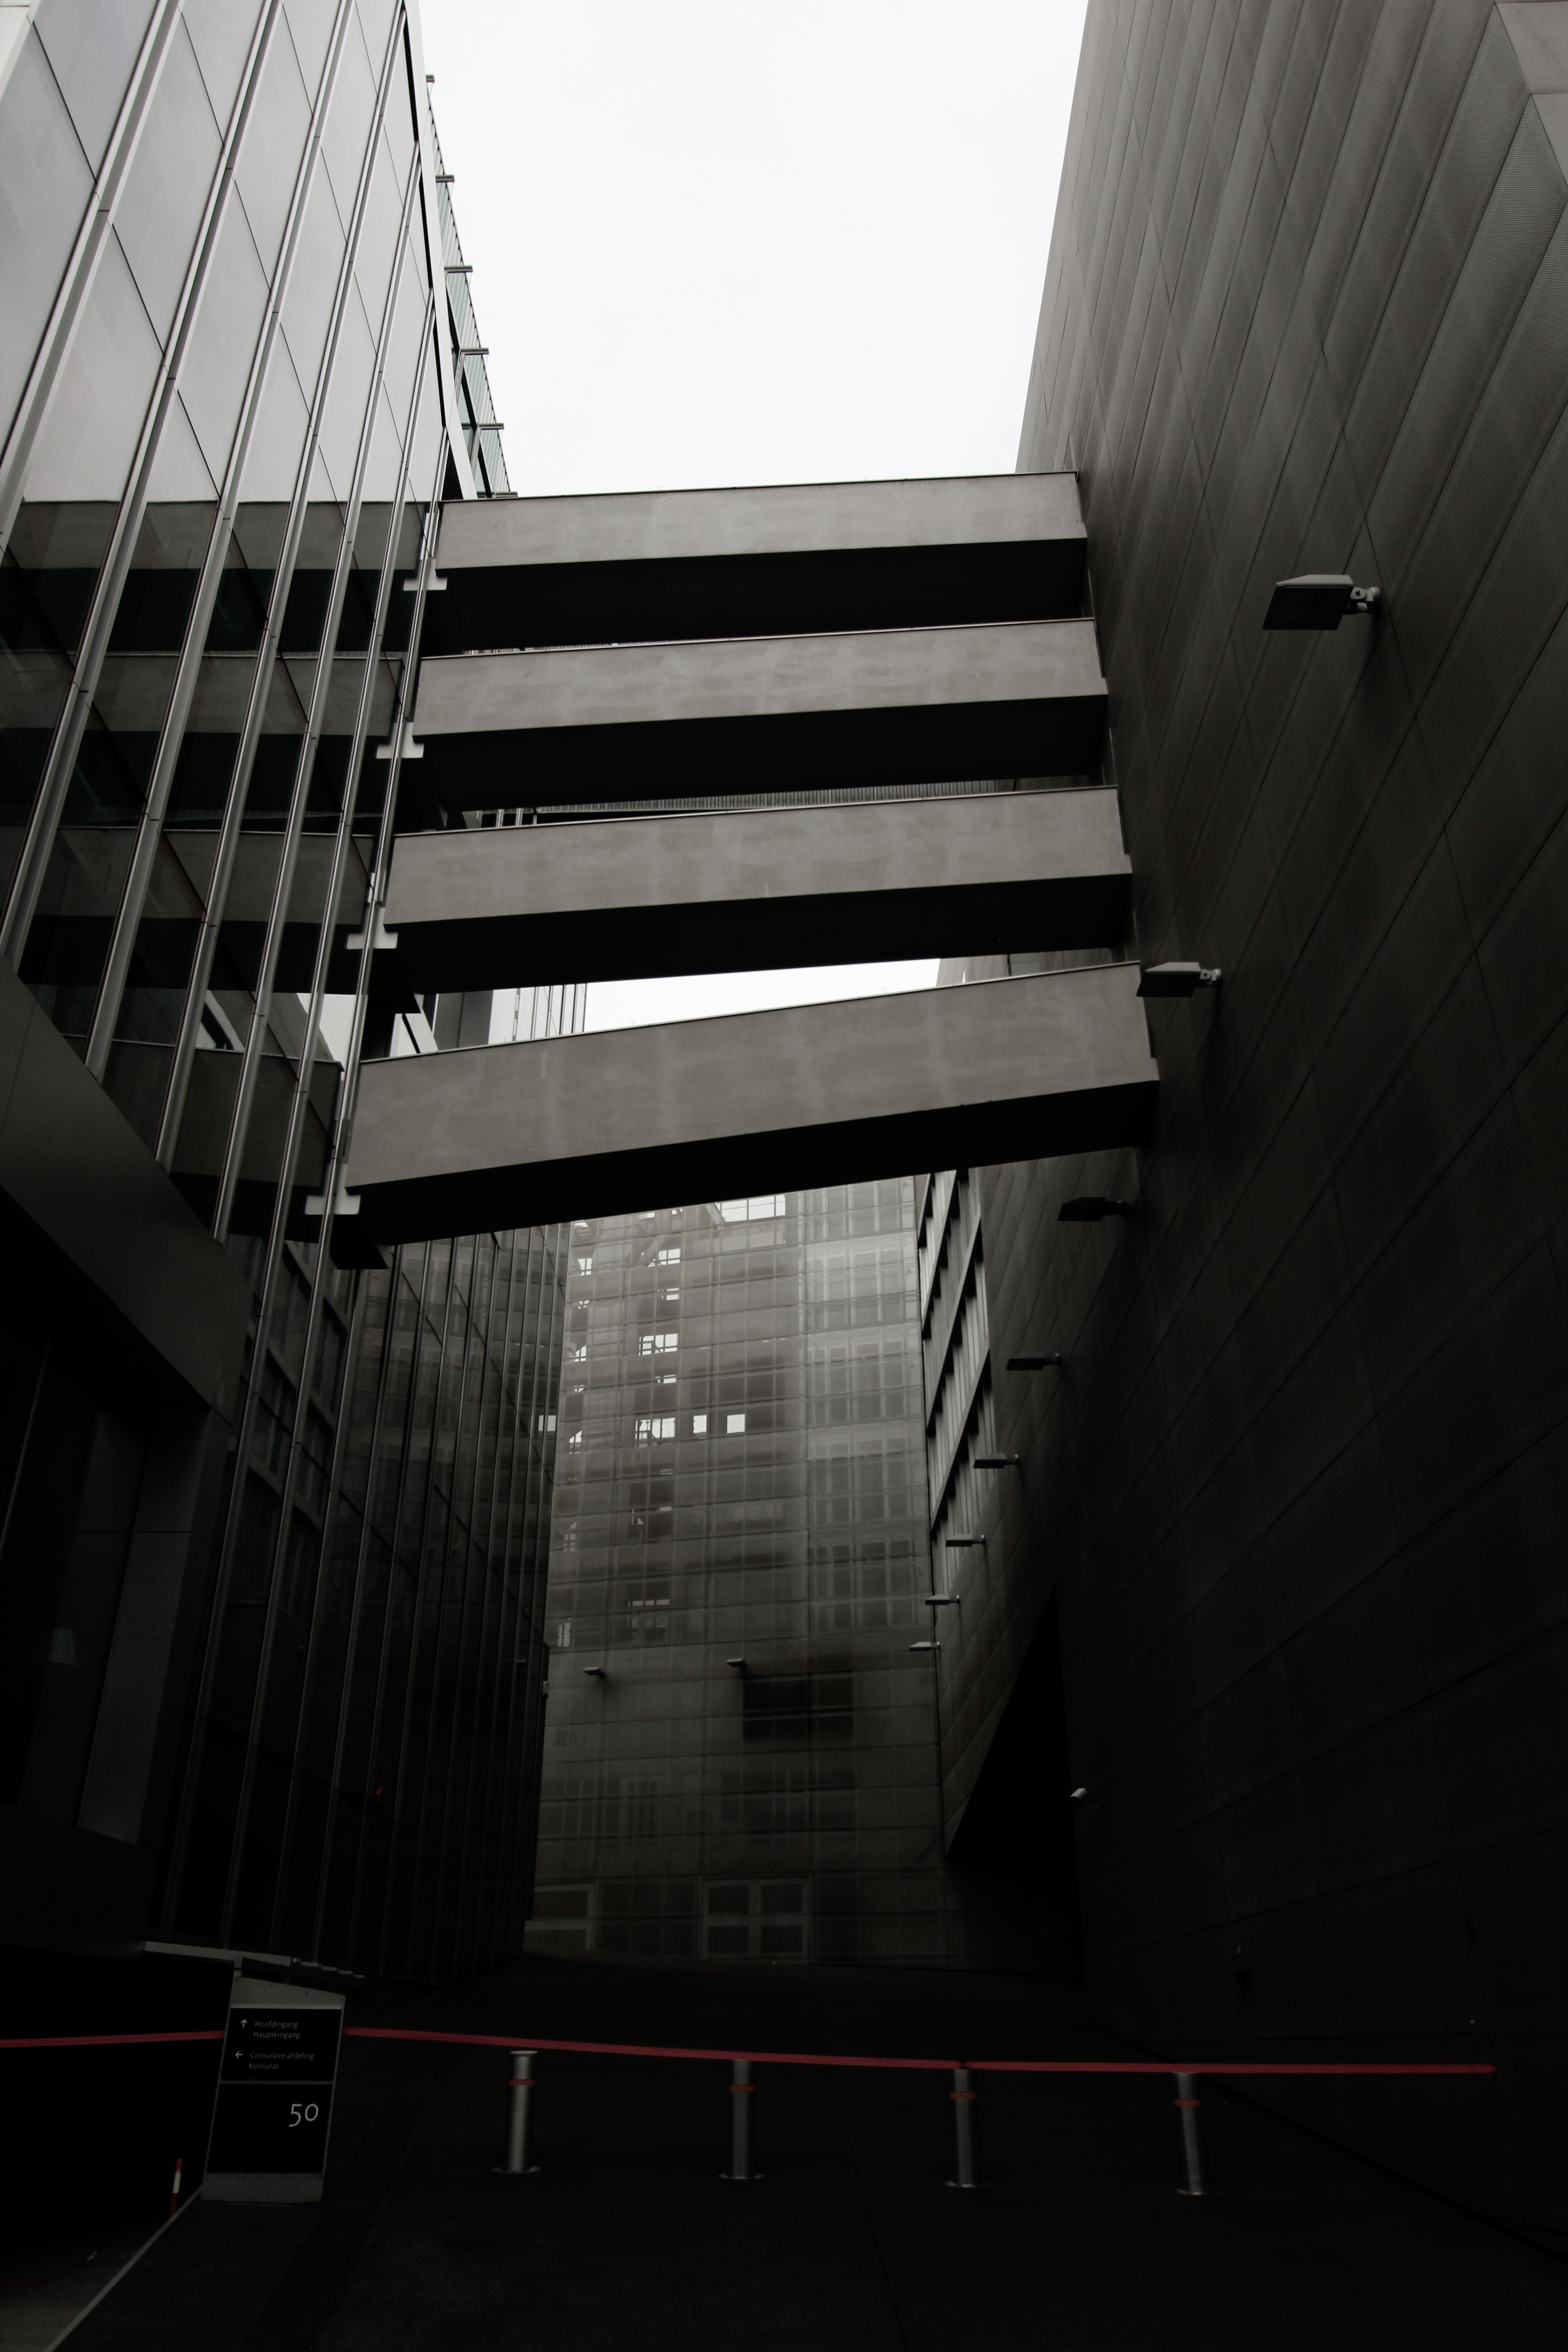 Black and white photo of modern buildings